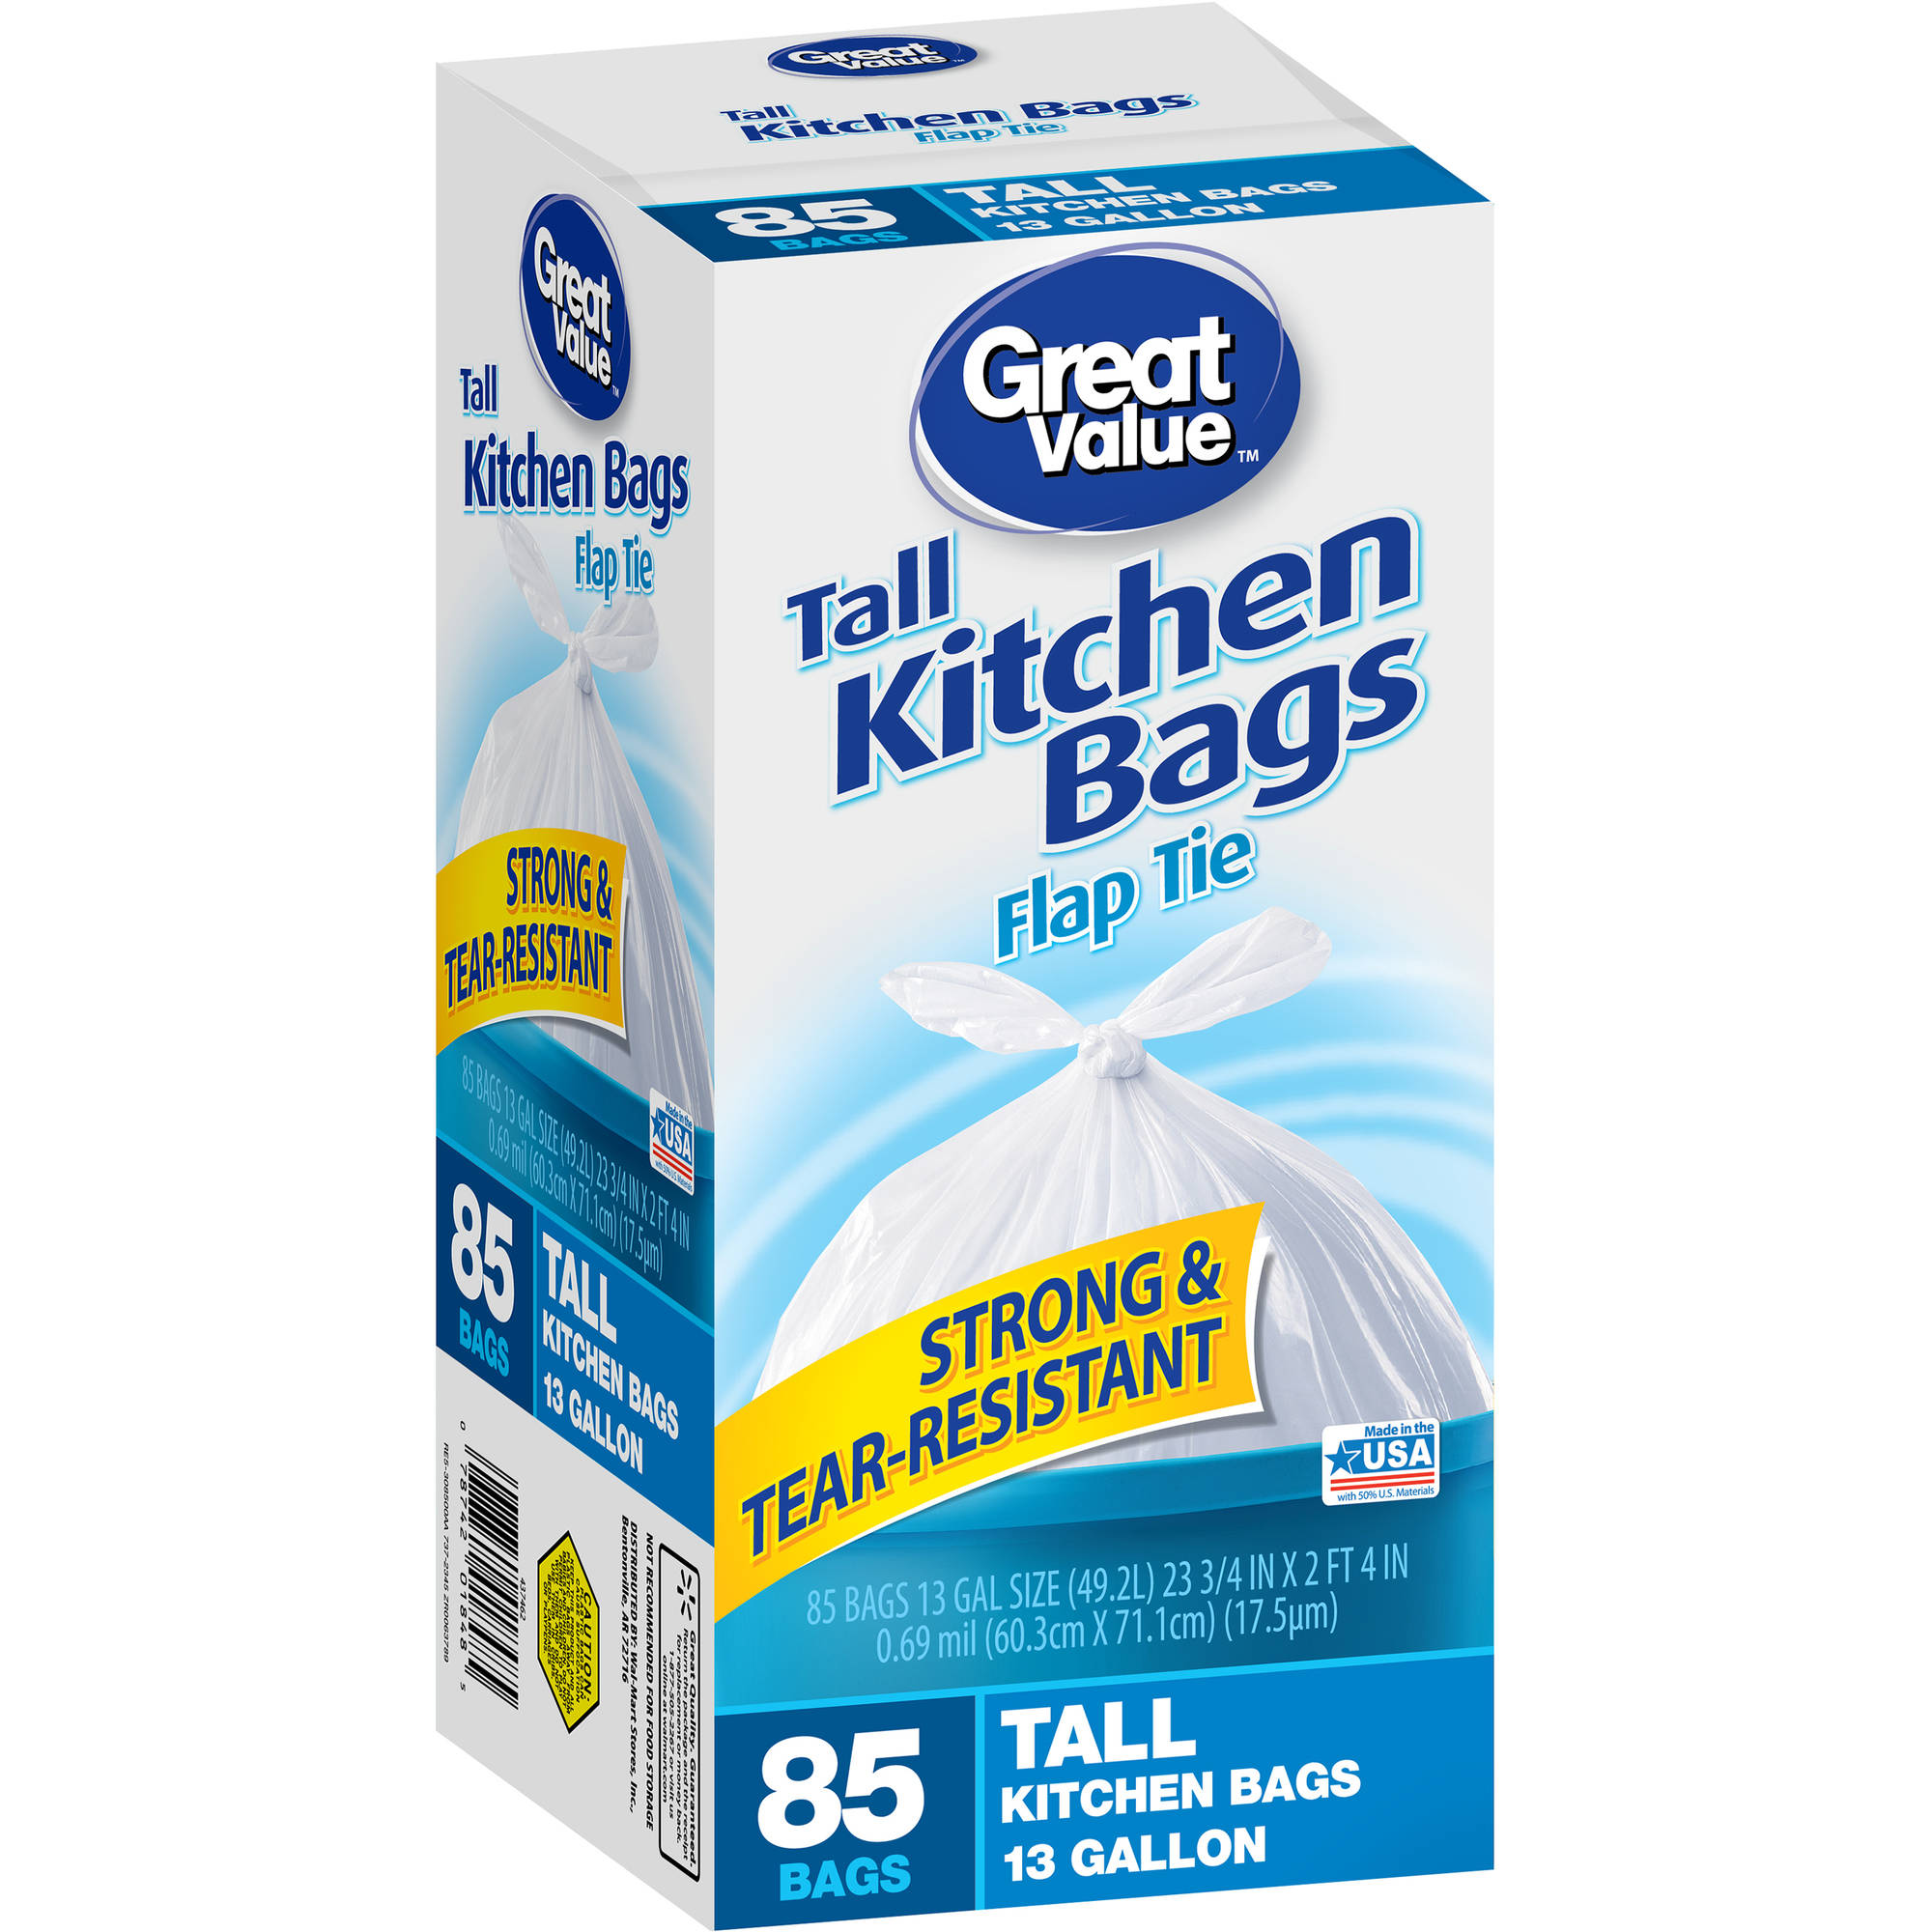 Great Value Flap Tie Closure Tall Kitchen Bags, 13 gal, 85 count